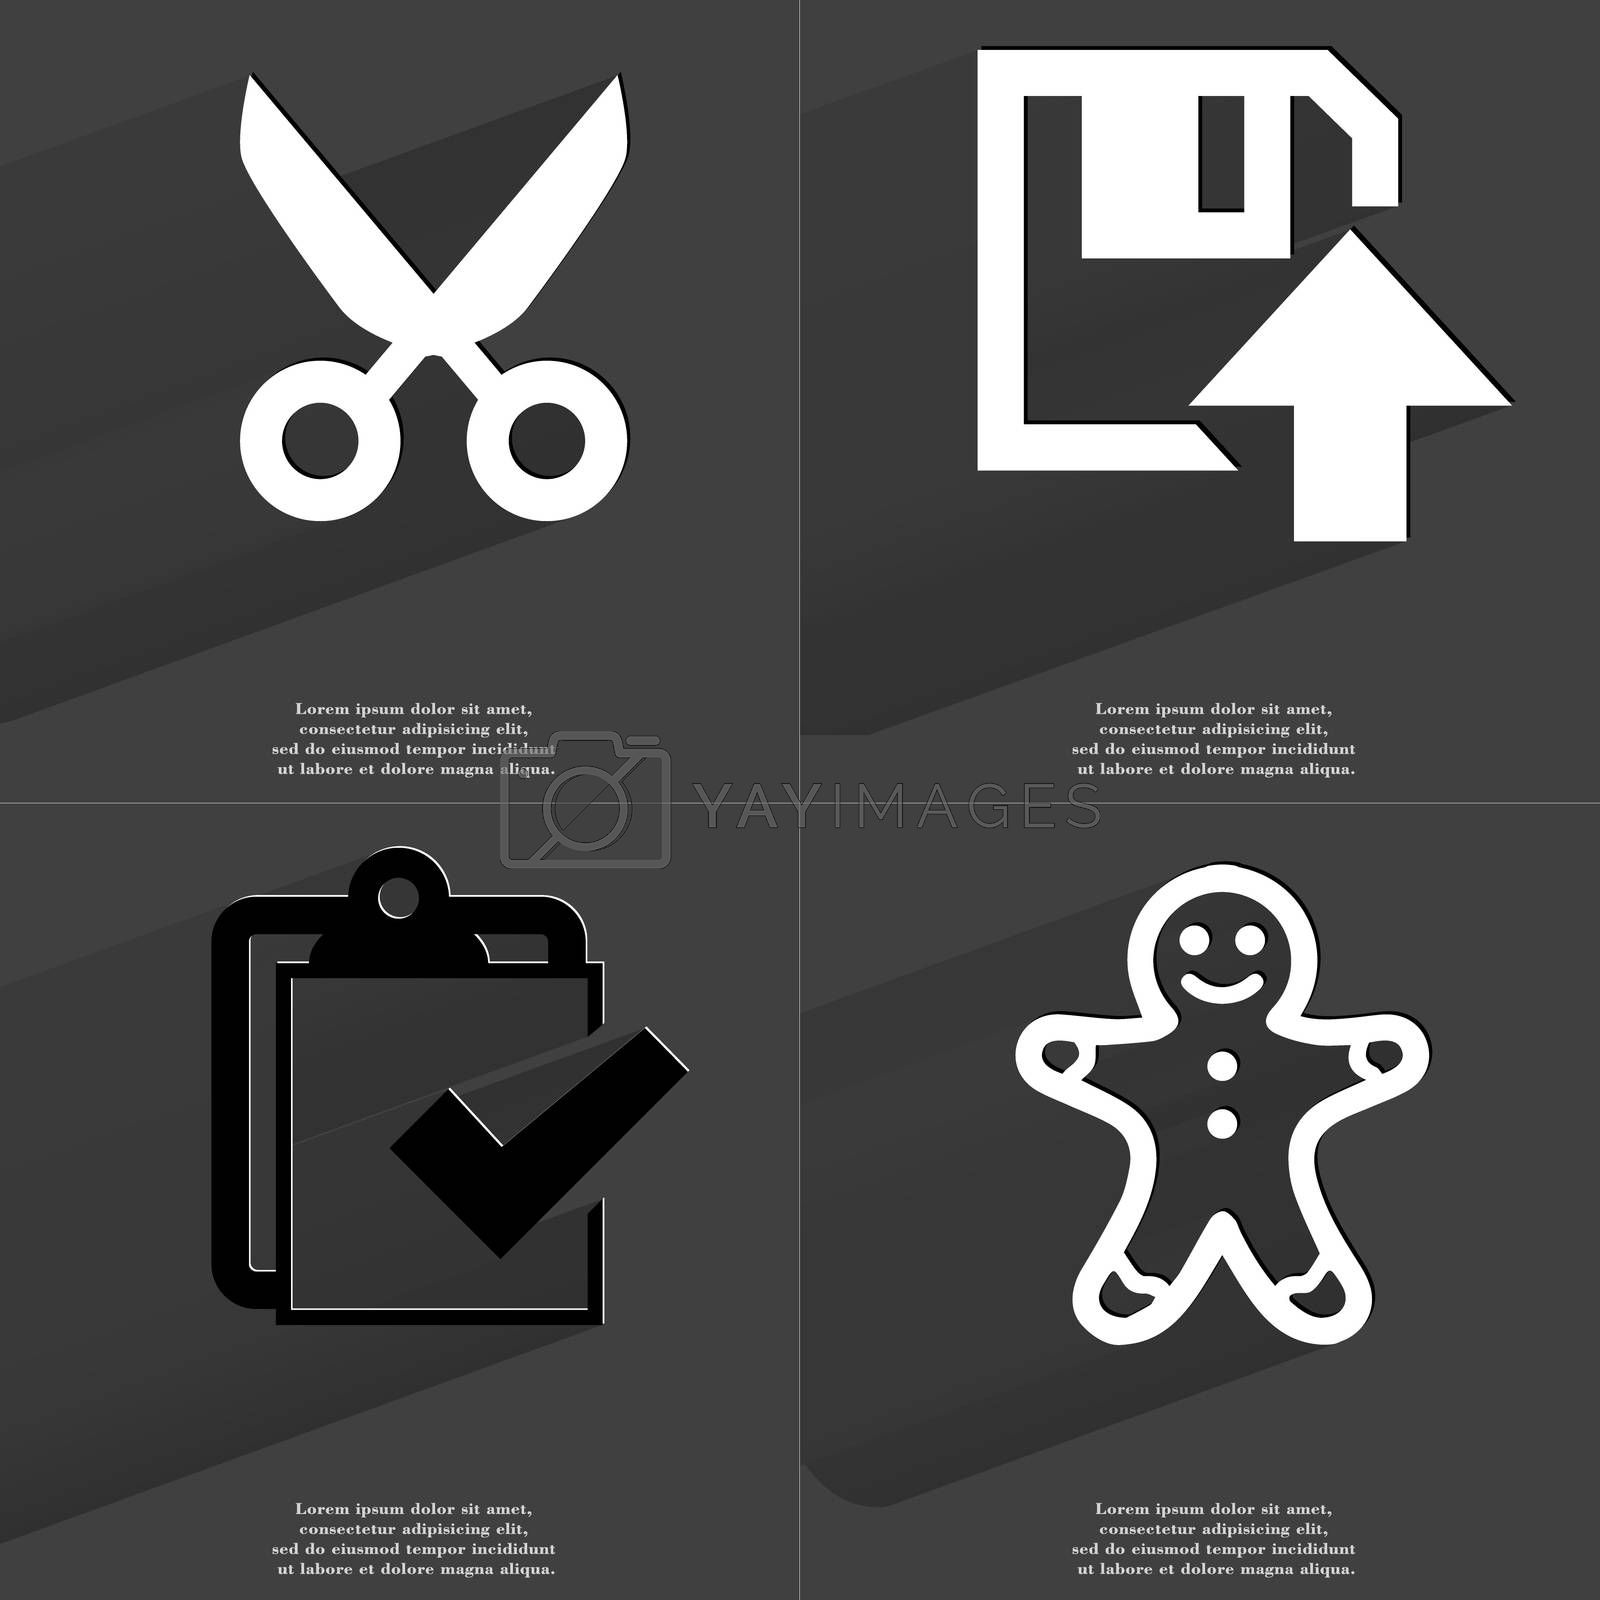 Royalty free image of Scissors, Floppy disk upload, Task completed icon, Gingerbread man. Symbols with long shadow. Flat design by serhii_lohvyniuk